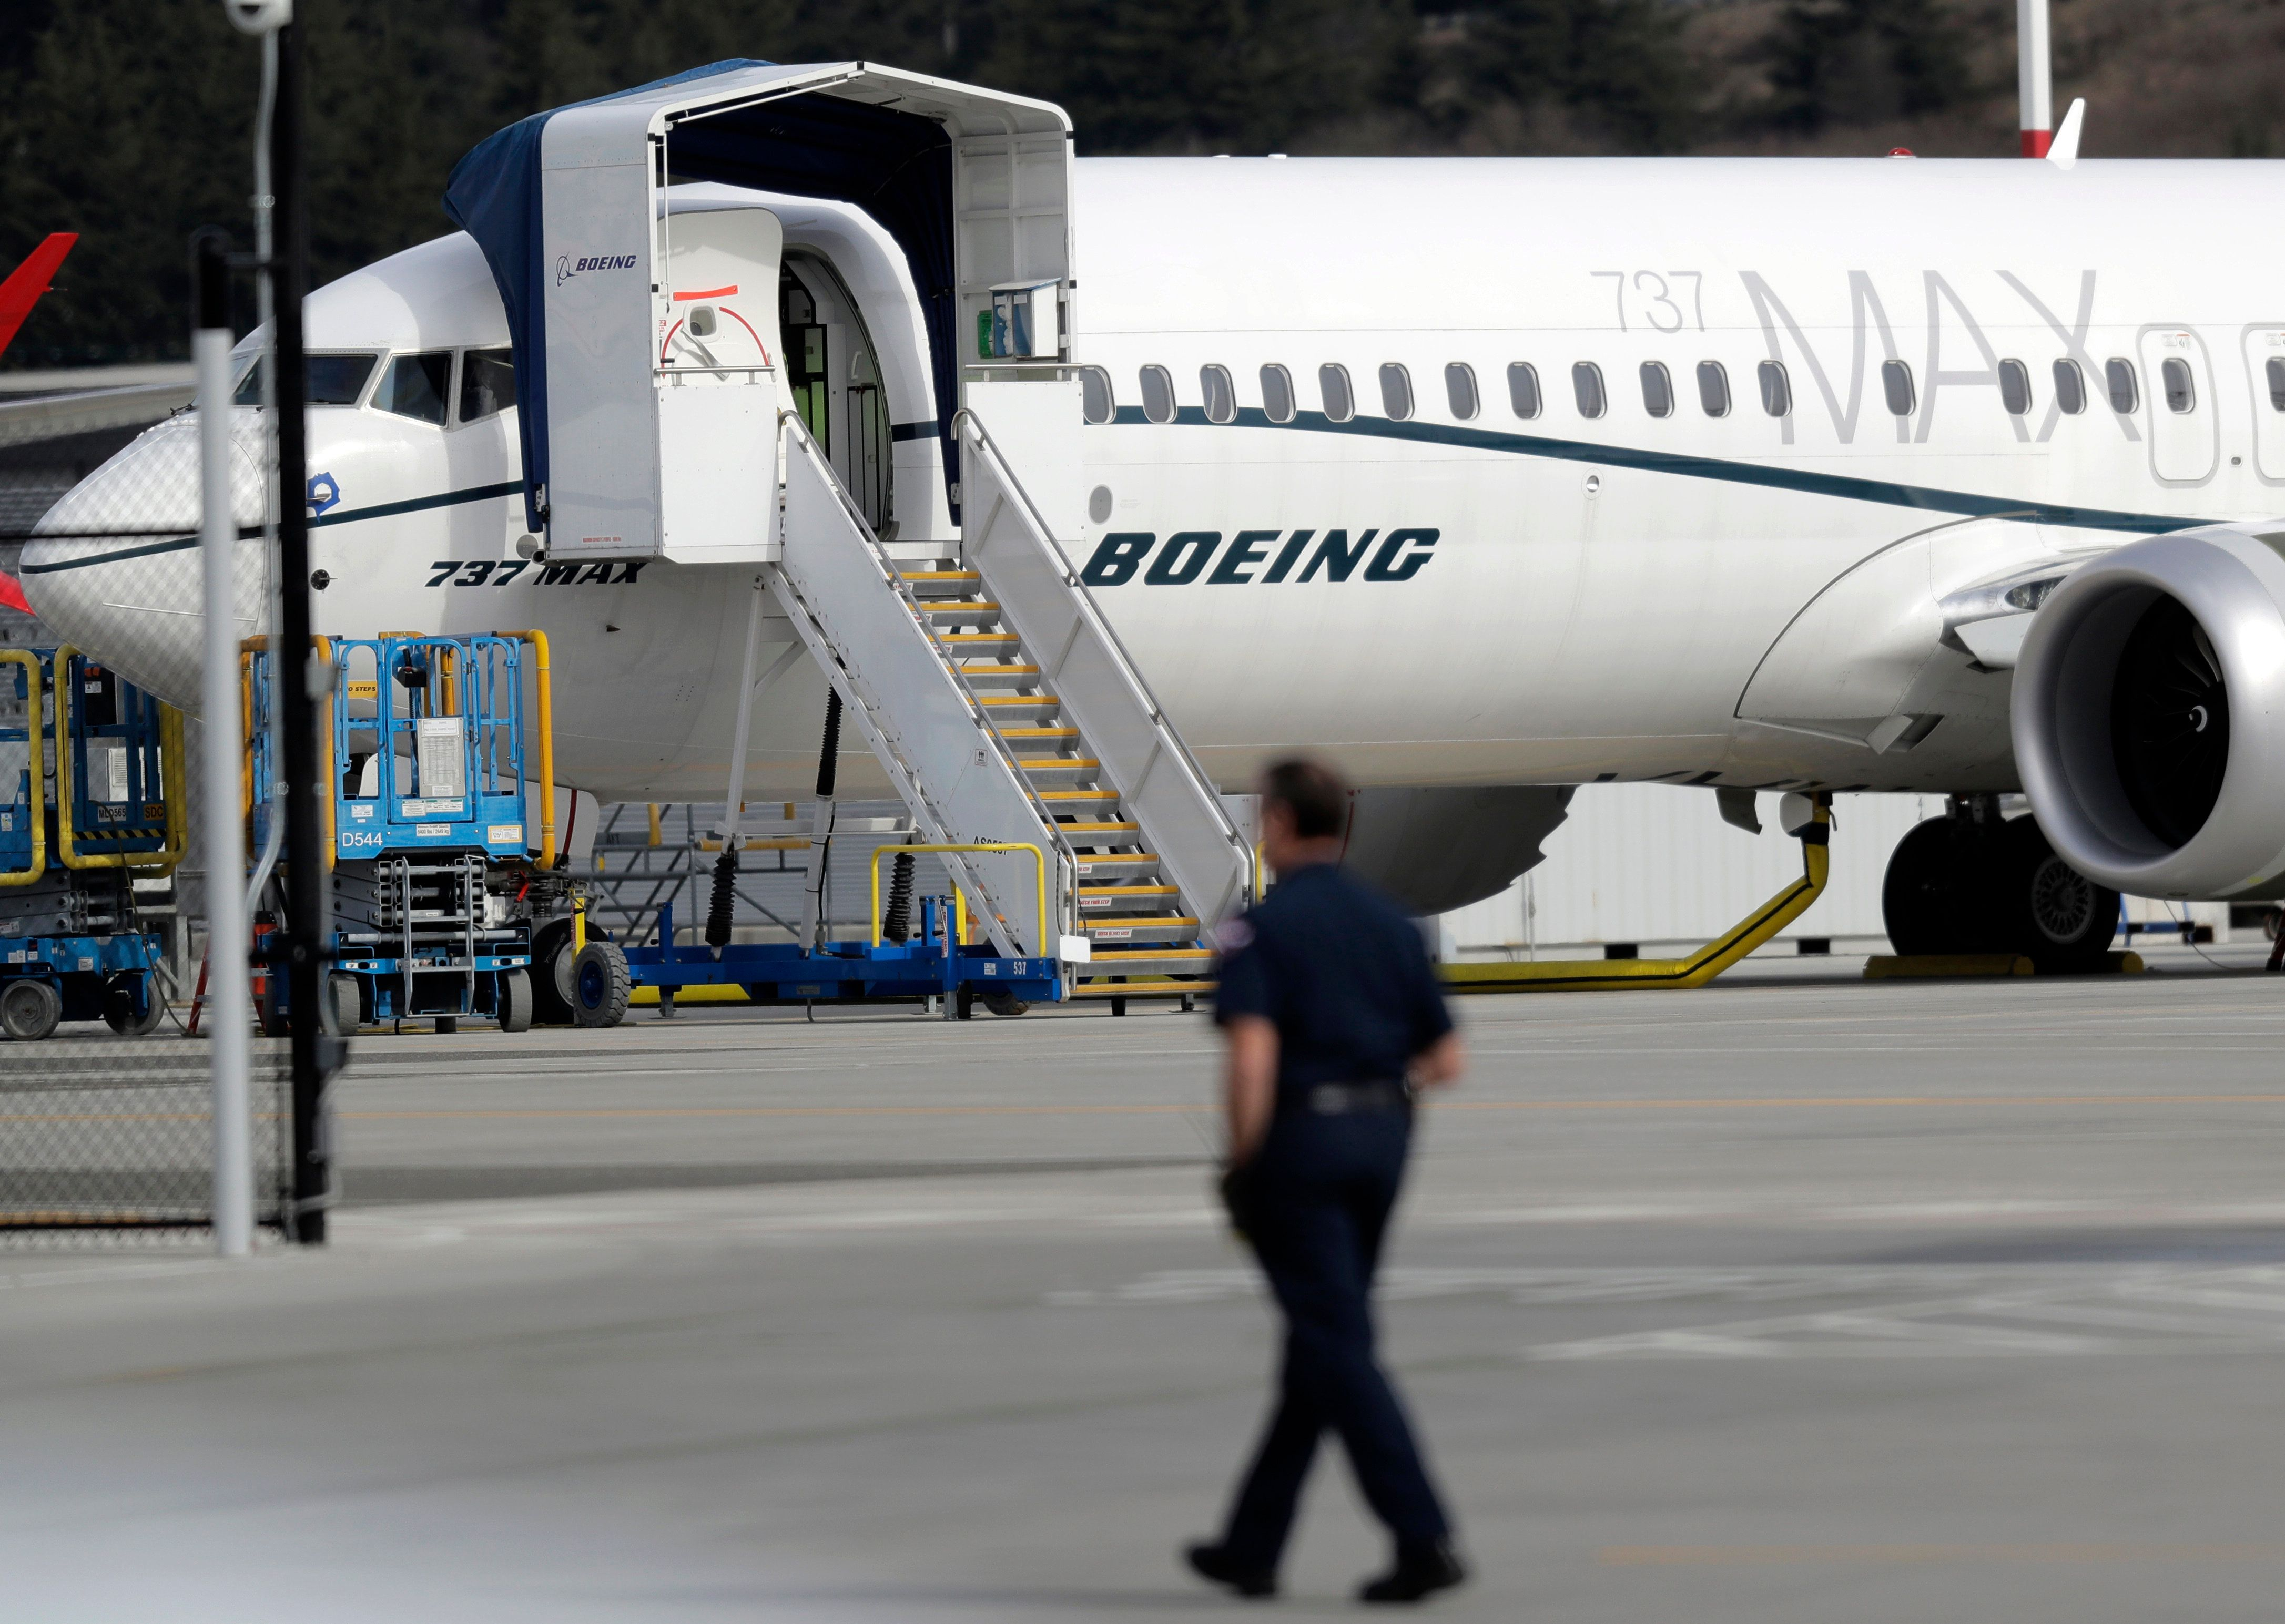 A worker walks next to a Boeing 737 MAX 8 airplane parked at Boeing Field, Thursday, March 14, 2019, in Seattle. The fatal crash Sunday of a 737 MAX 8 operated by Ethiopian Airlines was the second fatal flight for a Boeing 737 Max 8 in less than six months, and more than 40 countries, including the U.S., have now grounded the planes or refused to let them into their airspace. (AP Photo/Ted S. Warren)